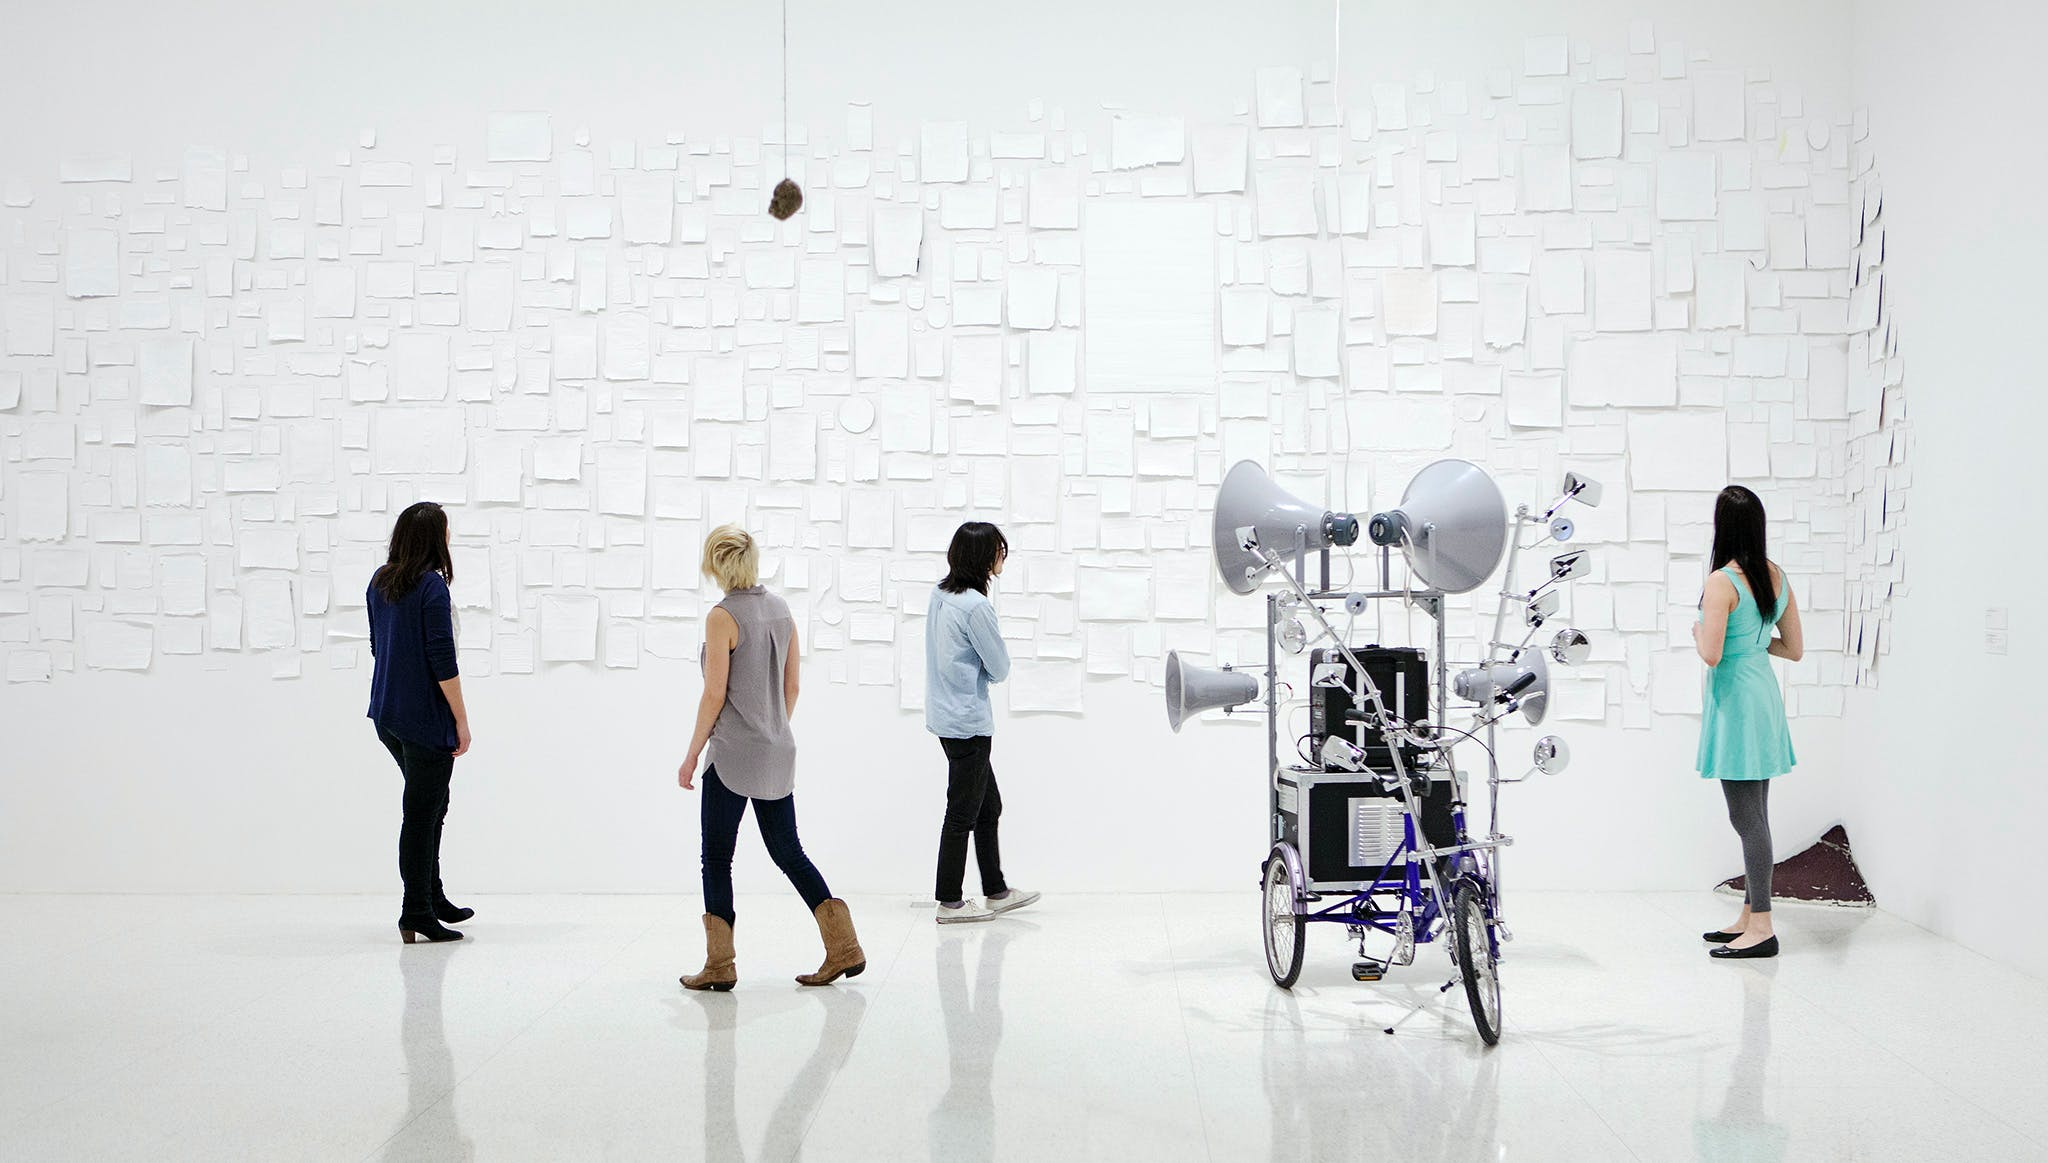 Installation view of the exhibition Abraham Cruzvillegas: The Autoconstrucción Suites, 2013